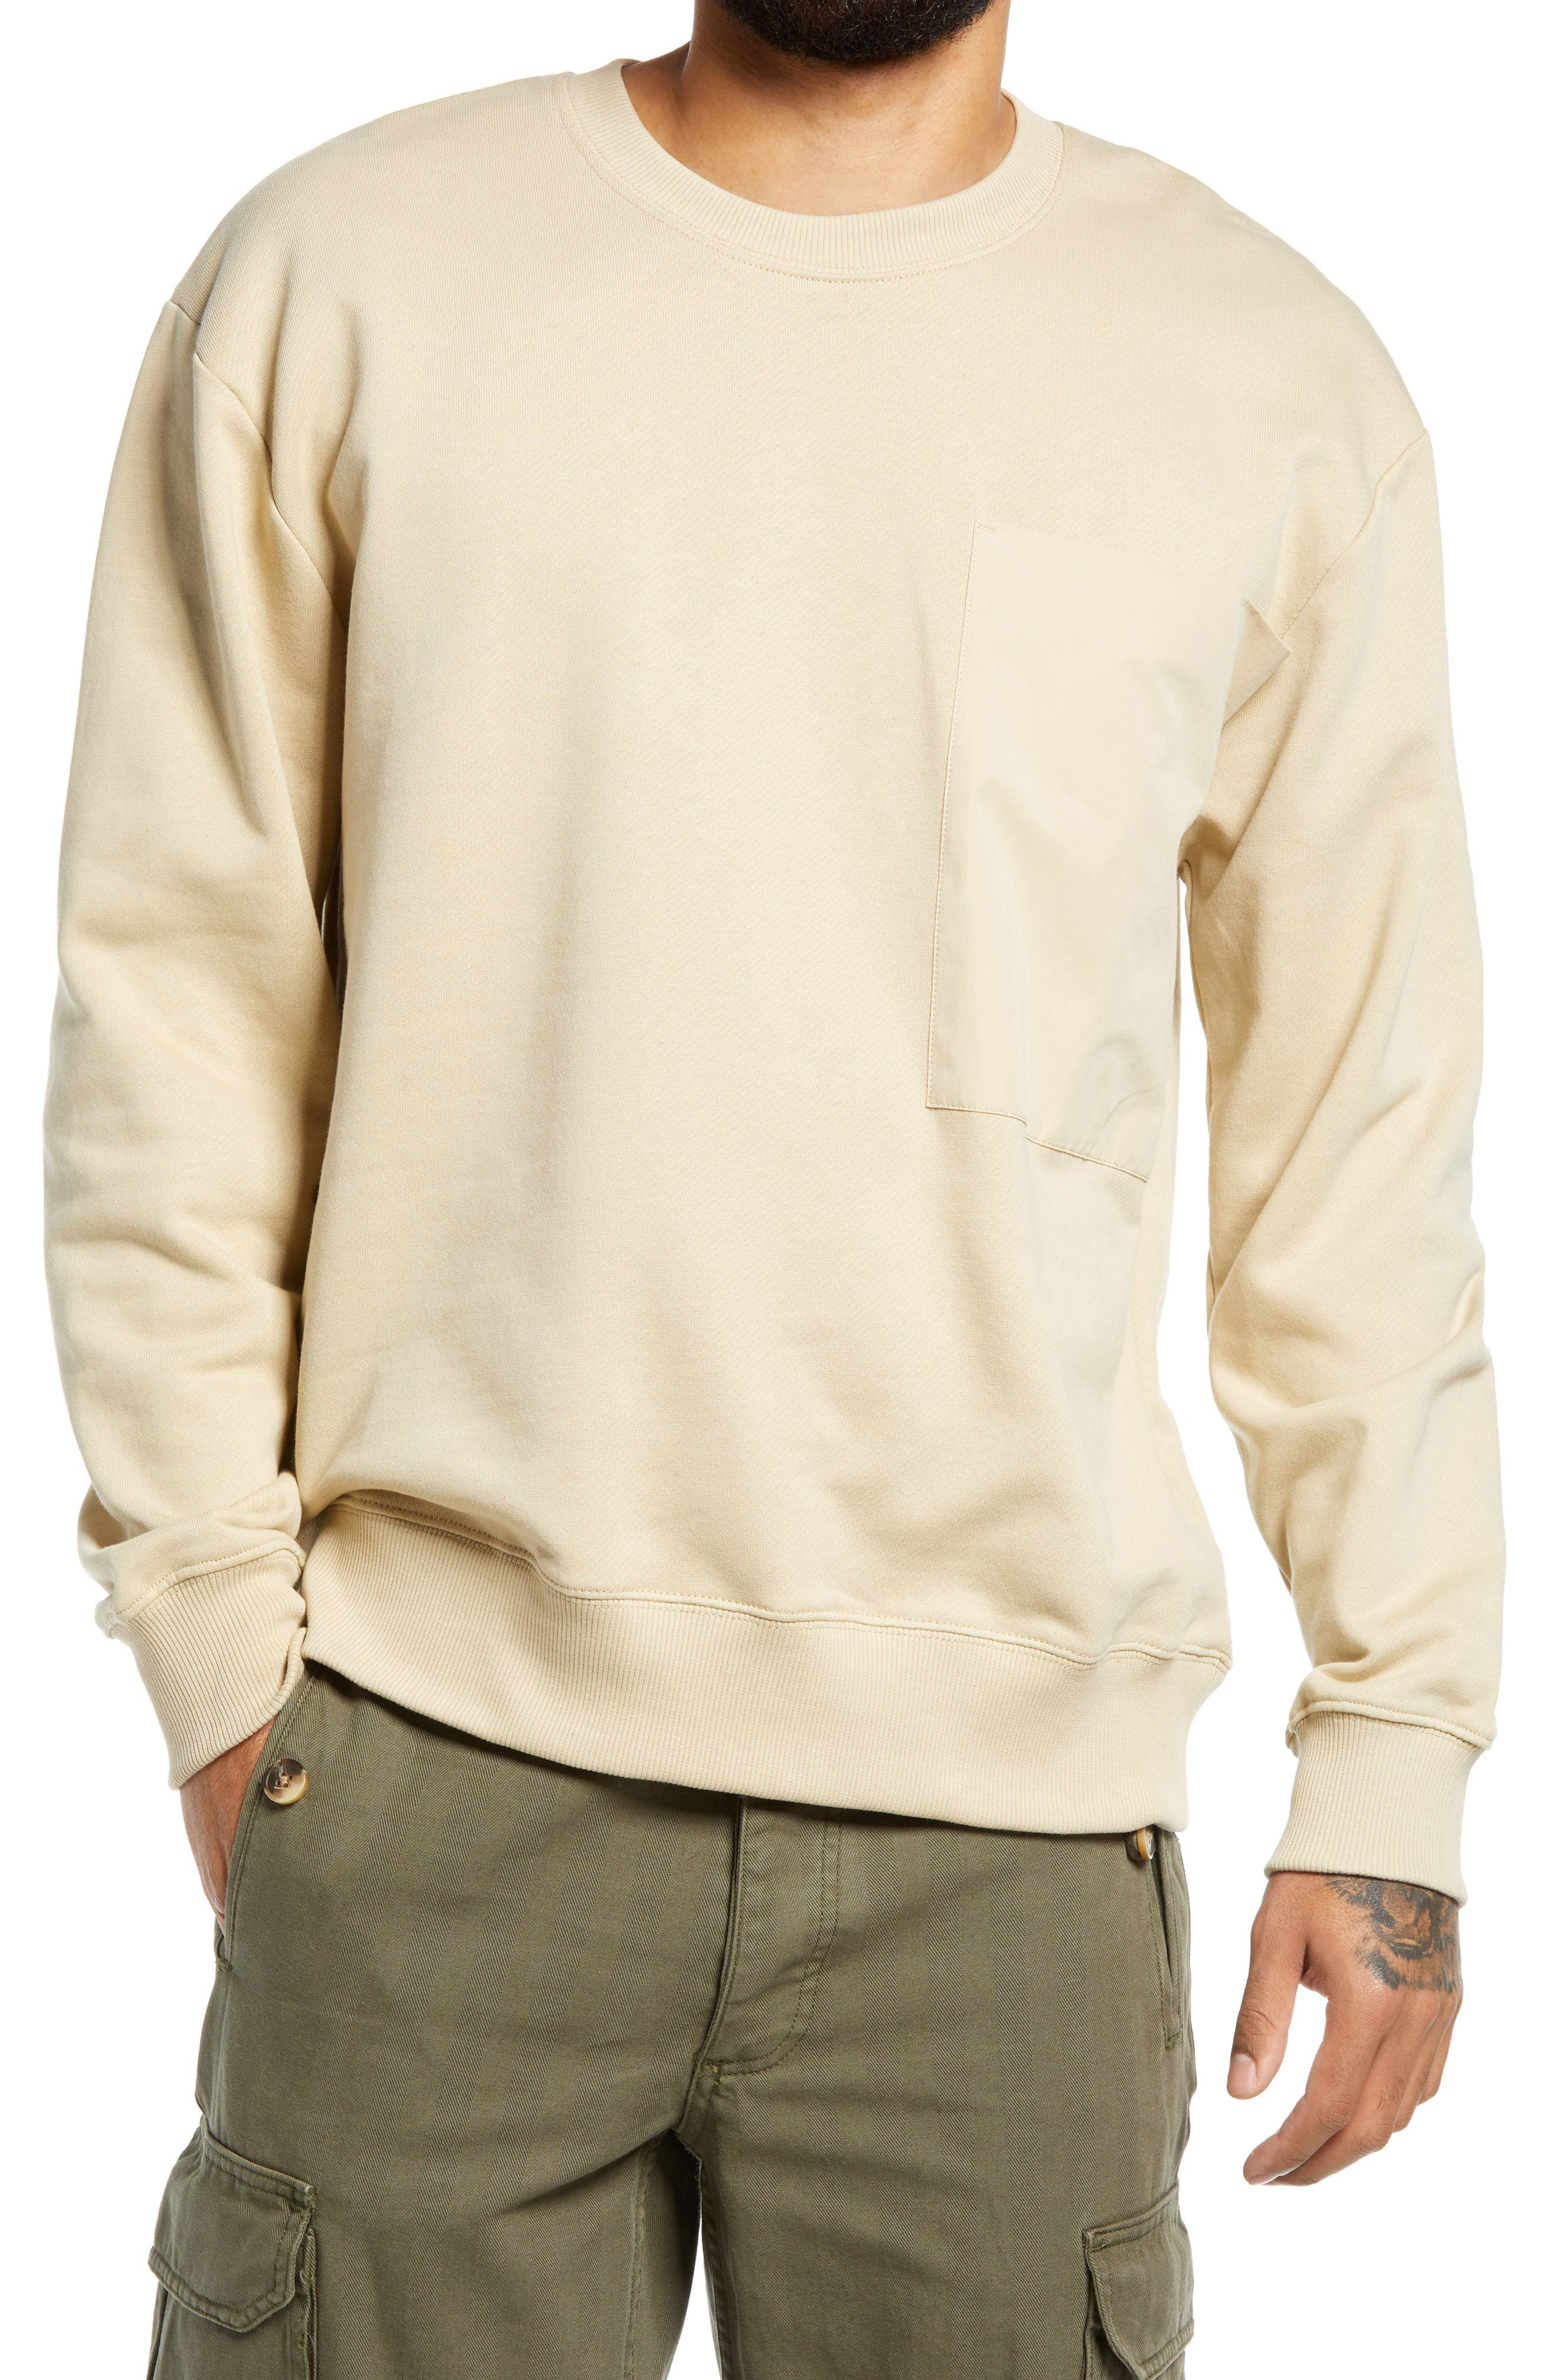 This wear-all-weekend sweatshirt done in a neutral hue has a relaxed vibe and a handy chest pocket. Style Name: Topman Pocket Cotton Sweatshirt. Style Number: 6155790. Available in stores.